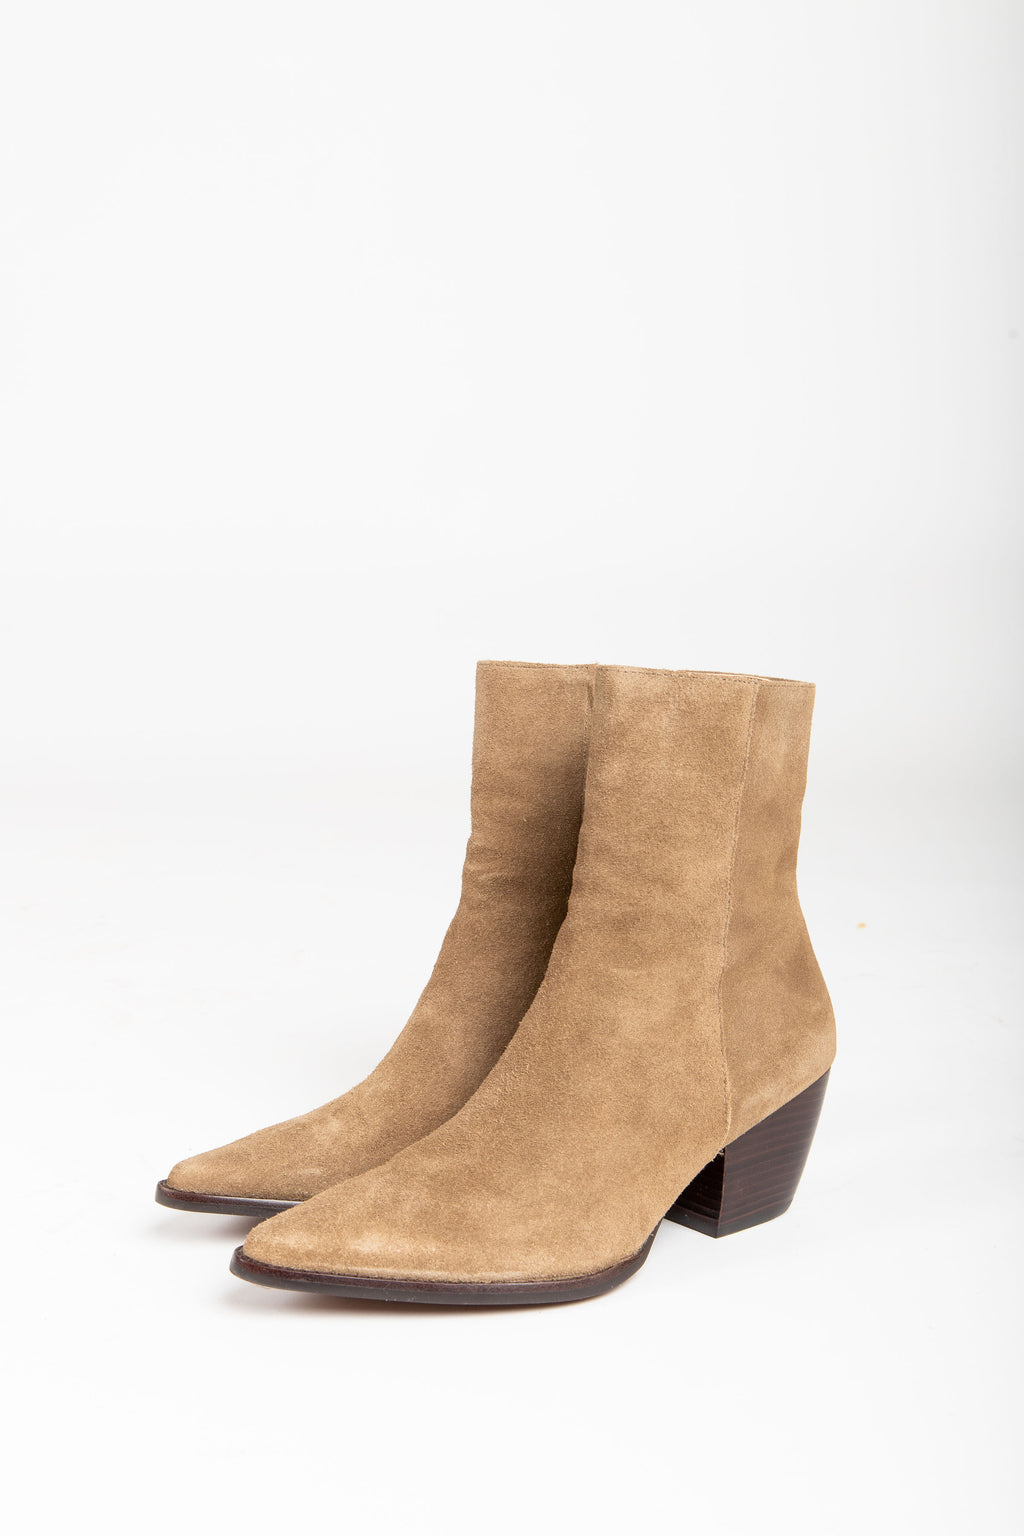 Matisse: Caty Boot in Taupe Suede, studio shoot; side view